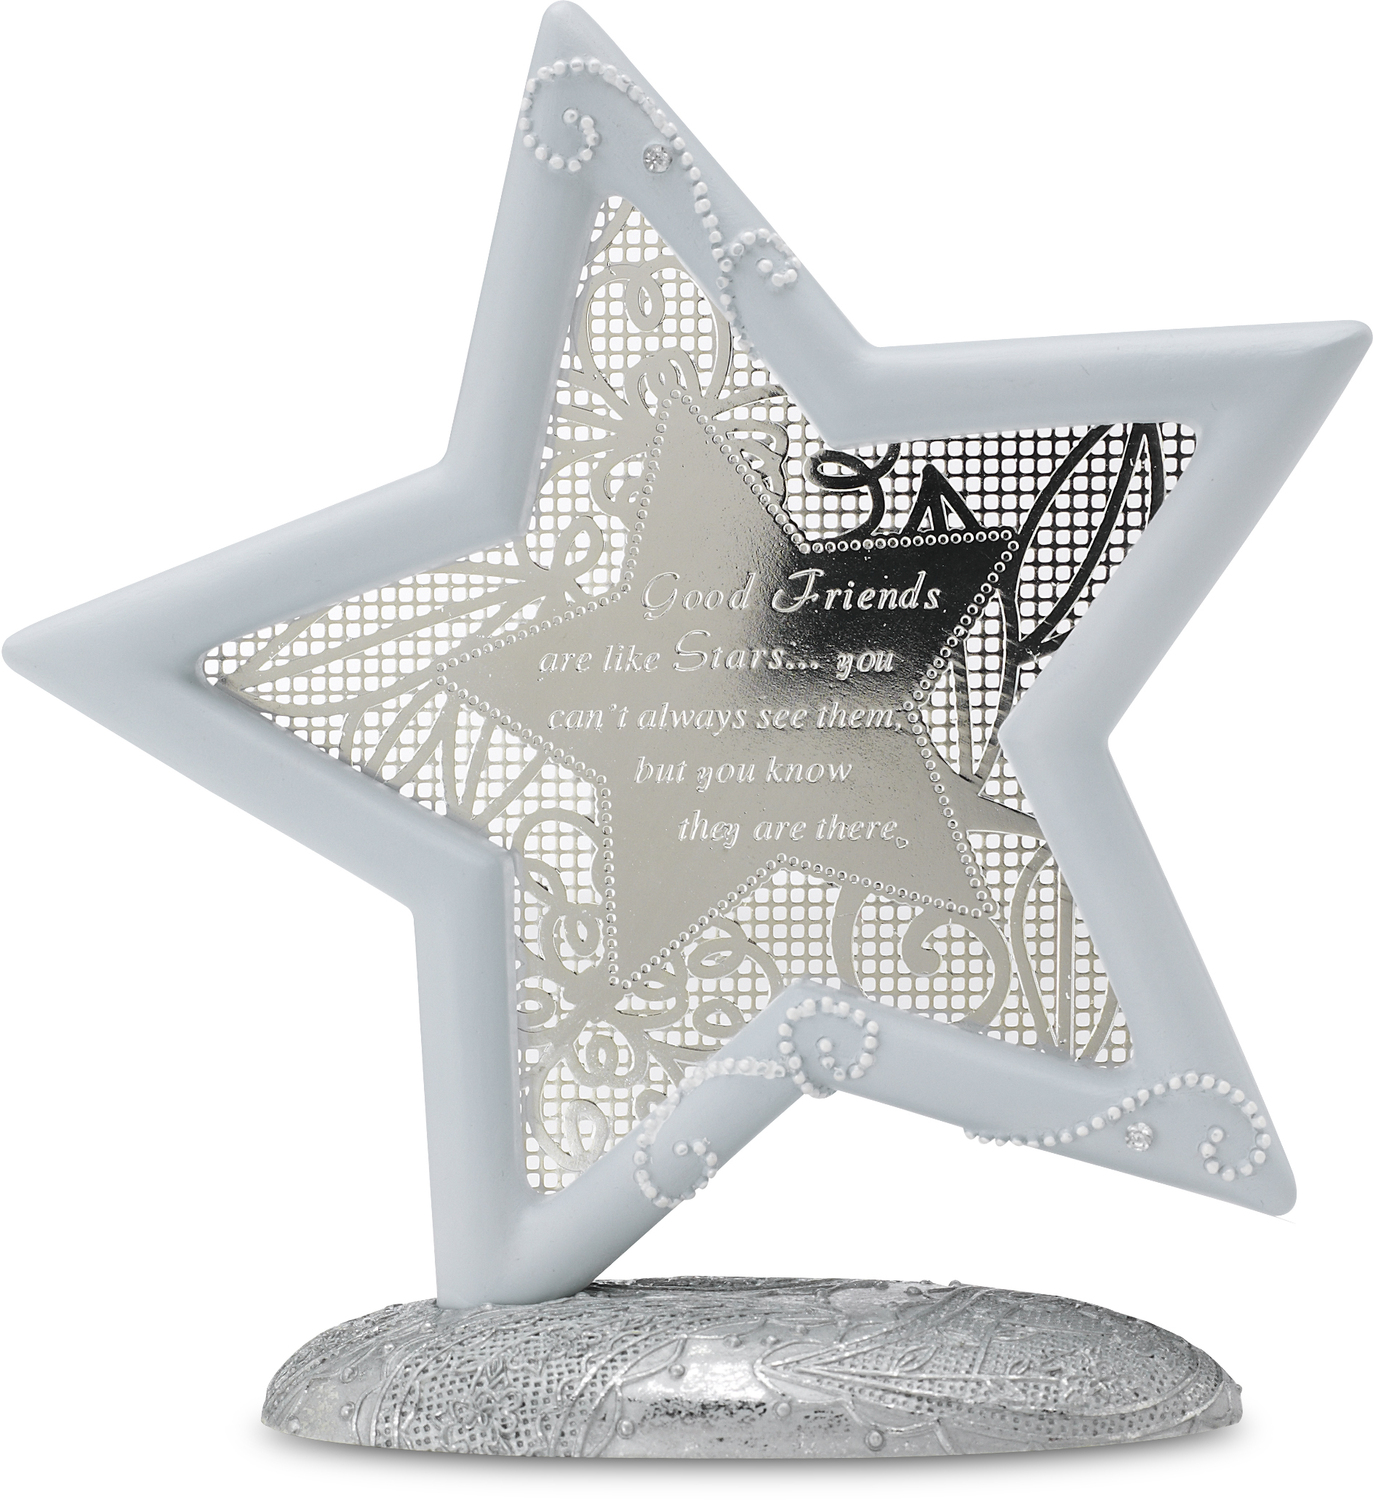 "Good Friends by Little Things Mean A Lot - Good Friends - 5.25"" Self Standing Star"